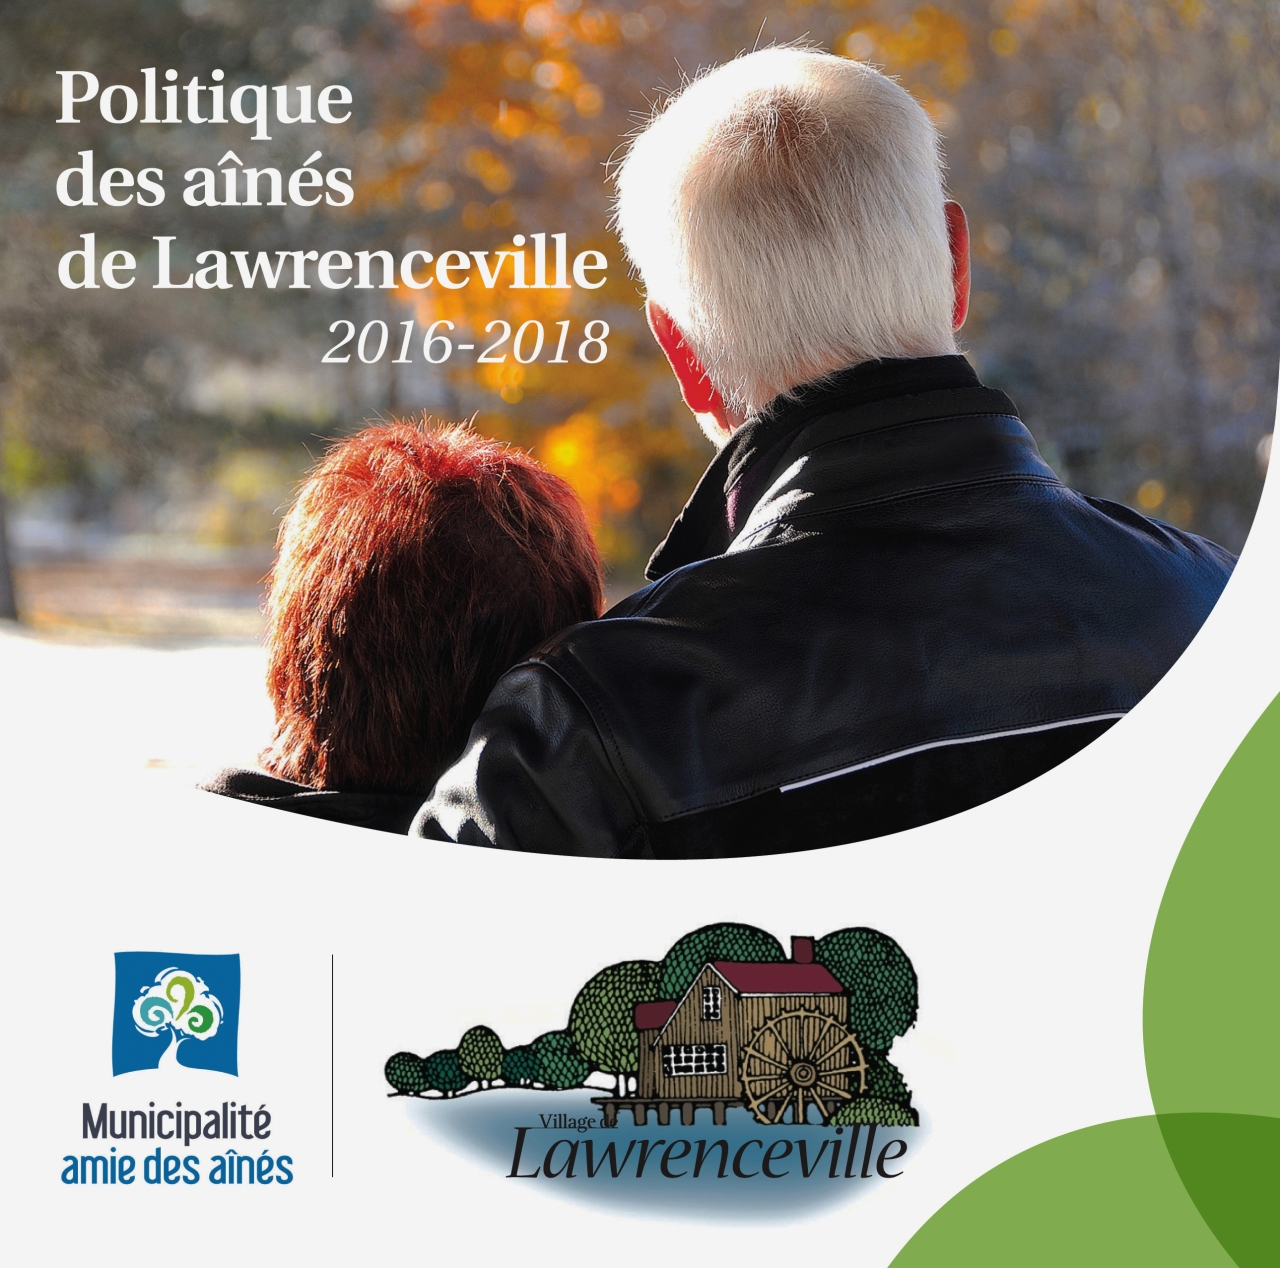 La politique des aînés du village de Lawrenceville 2016-2018 Elder program of Lawrenceville.